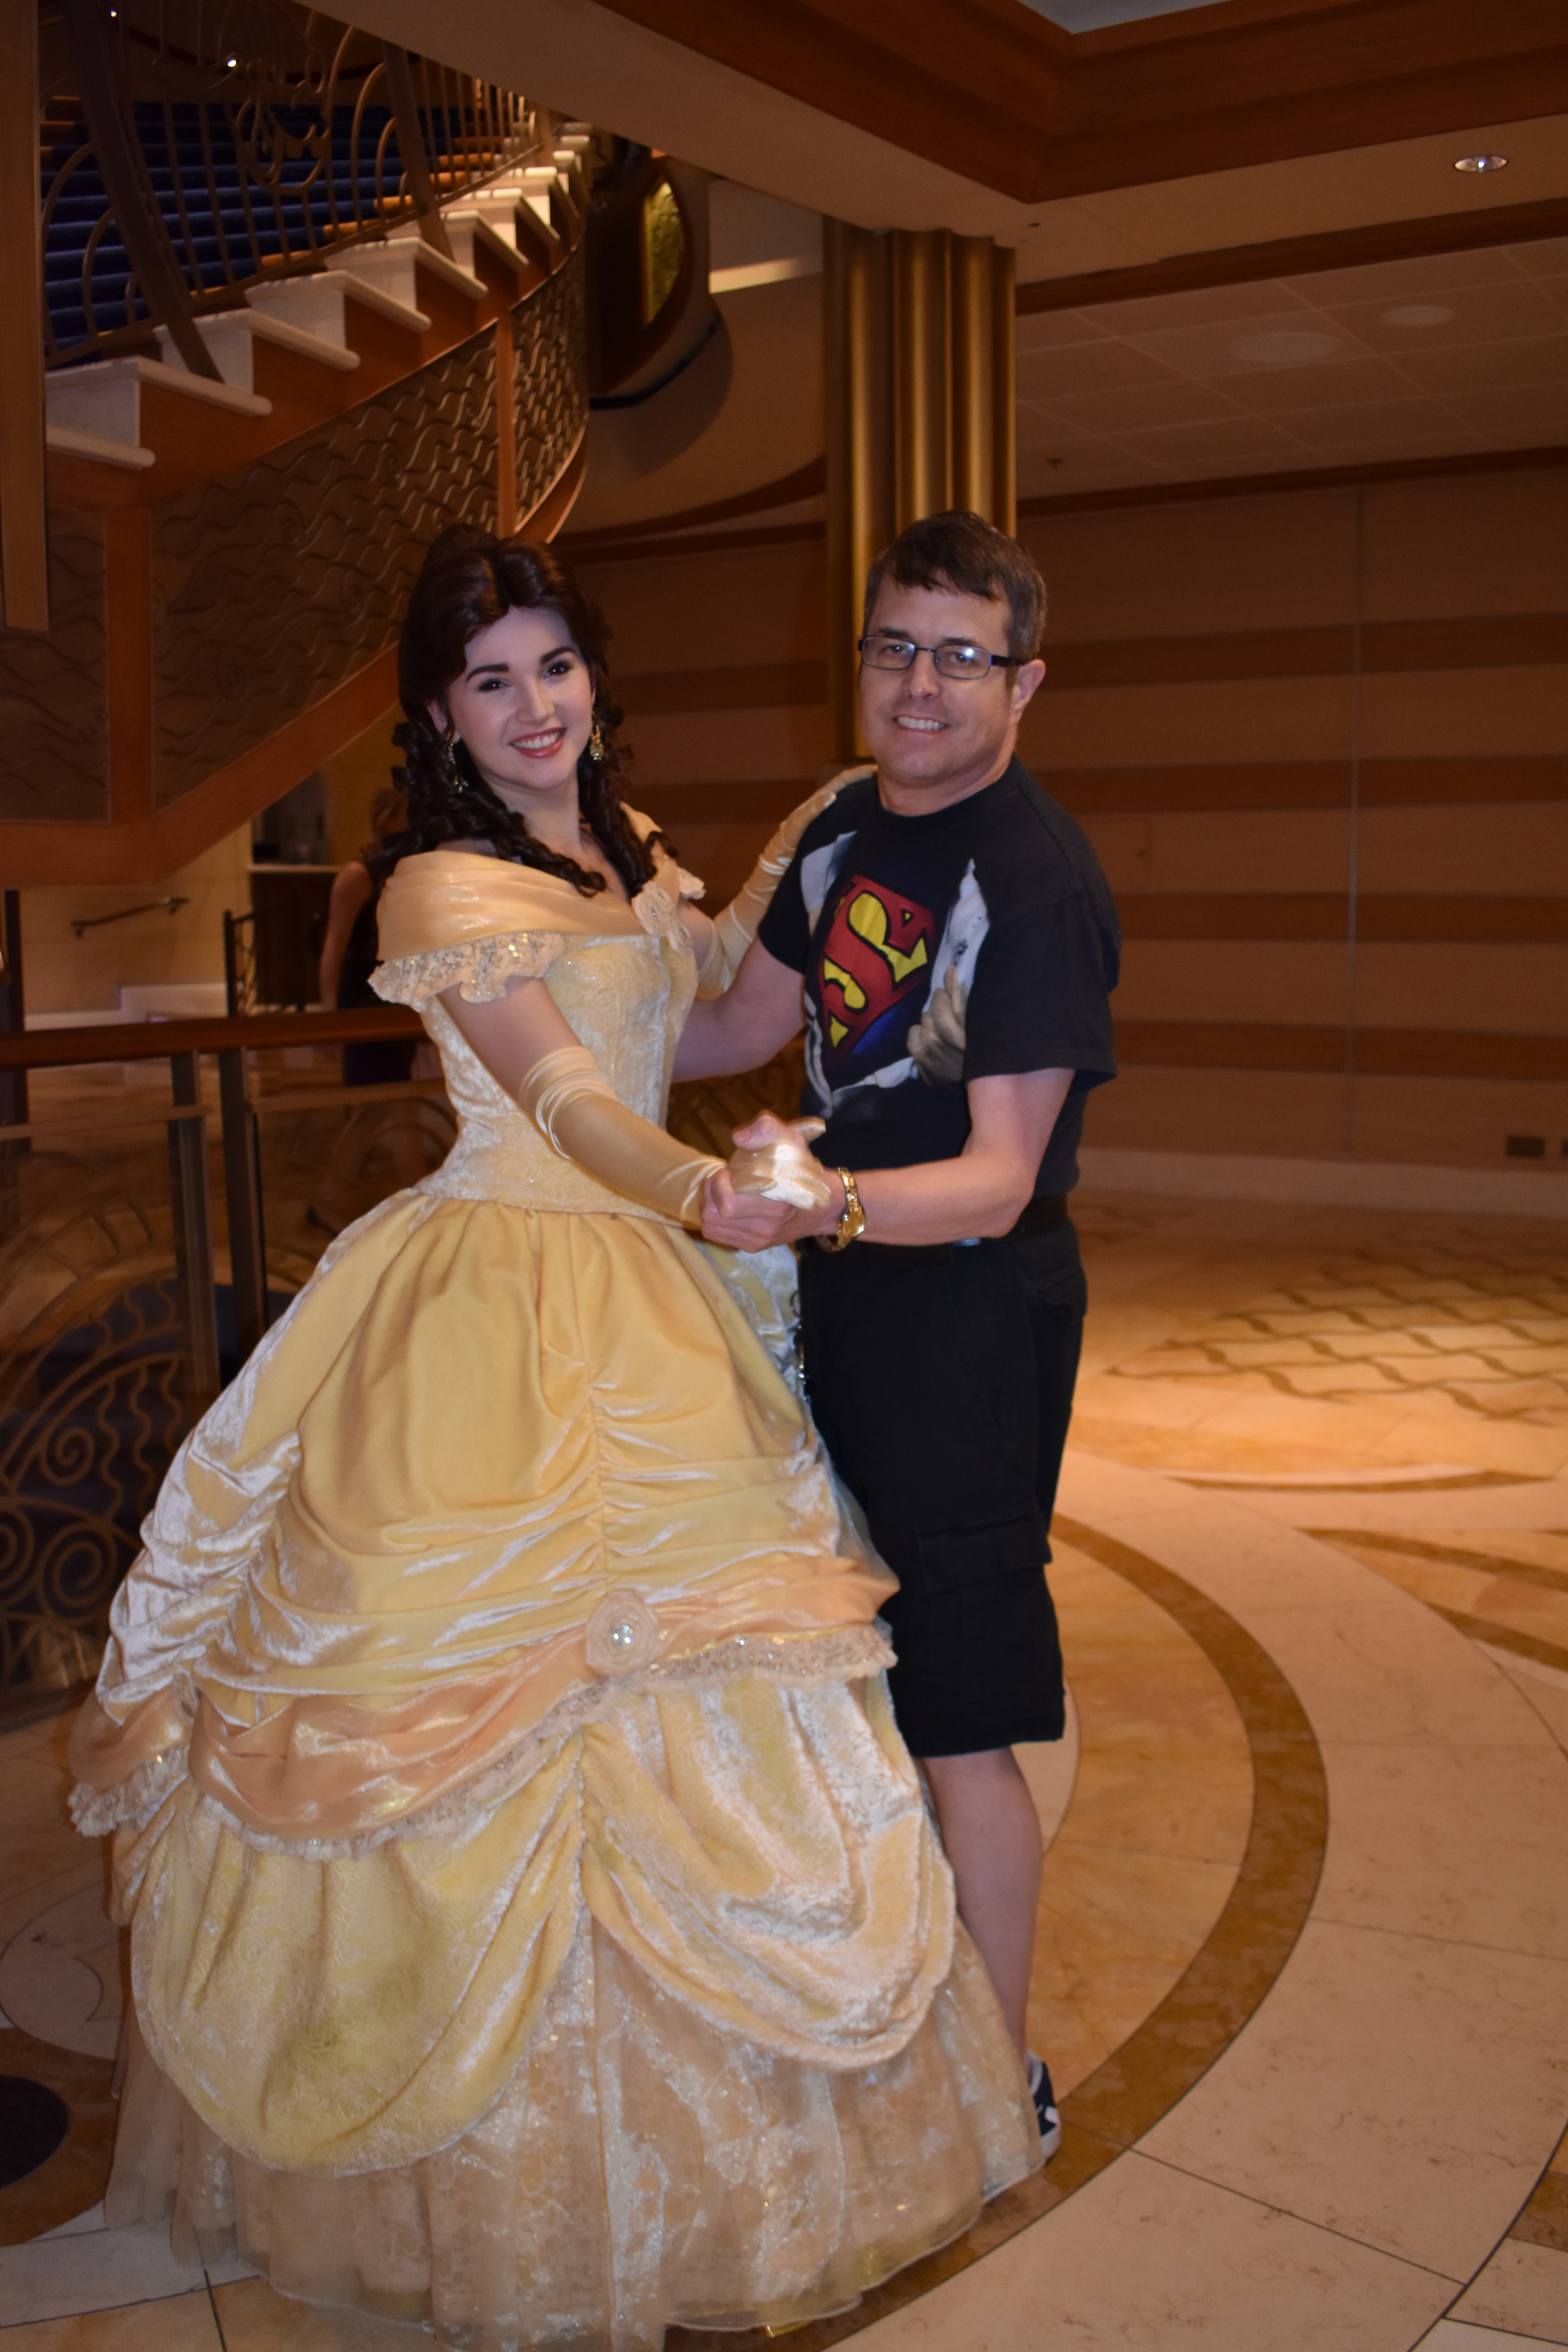 Vacationer posing with a princess